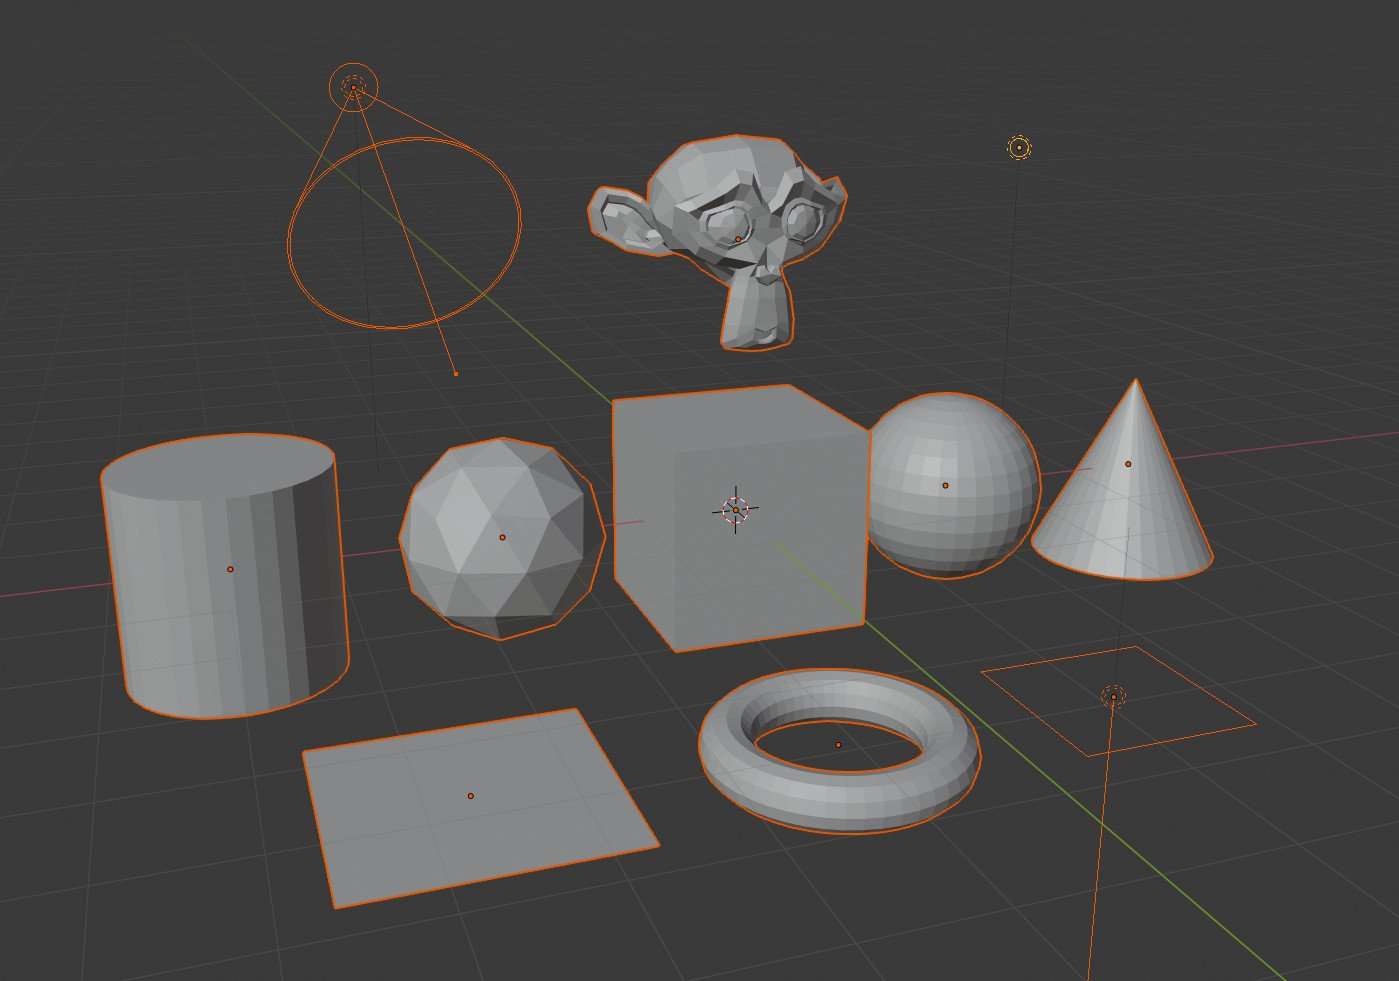 Blender: How to Select All Objects – Simply Explained | All3DP